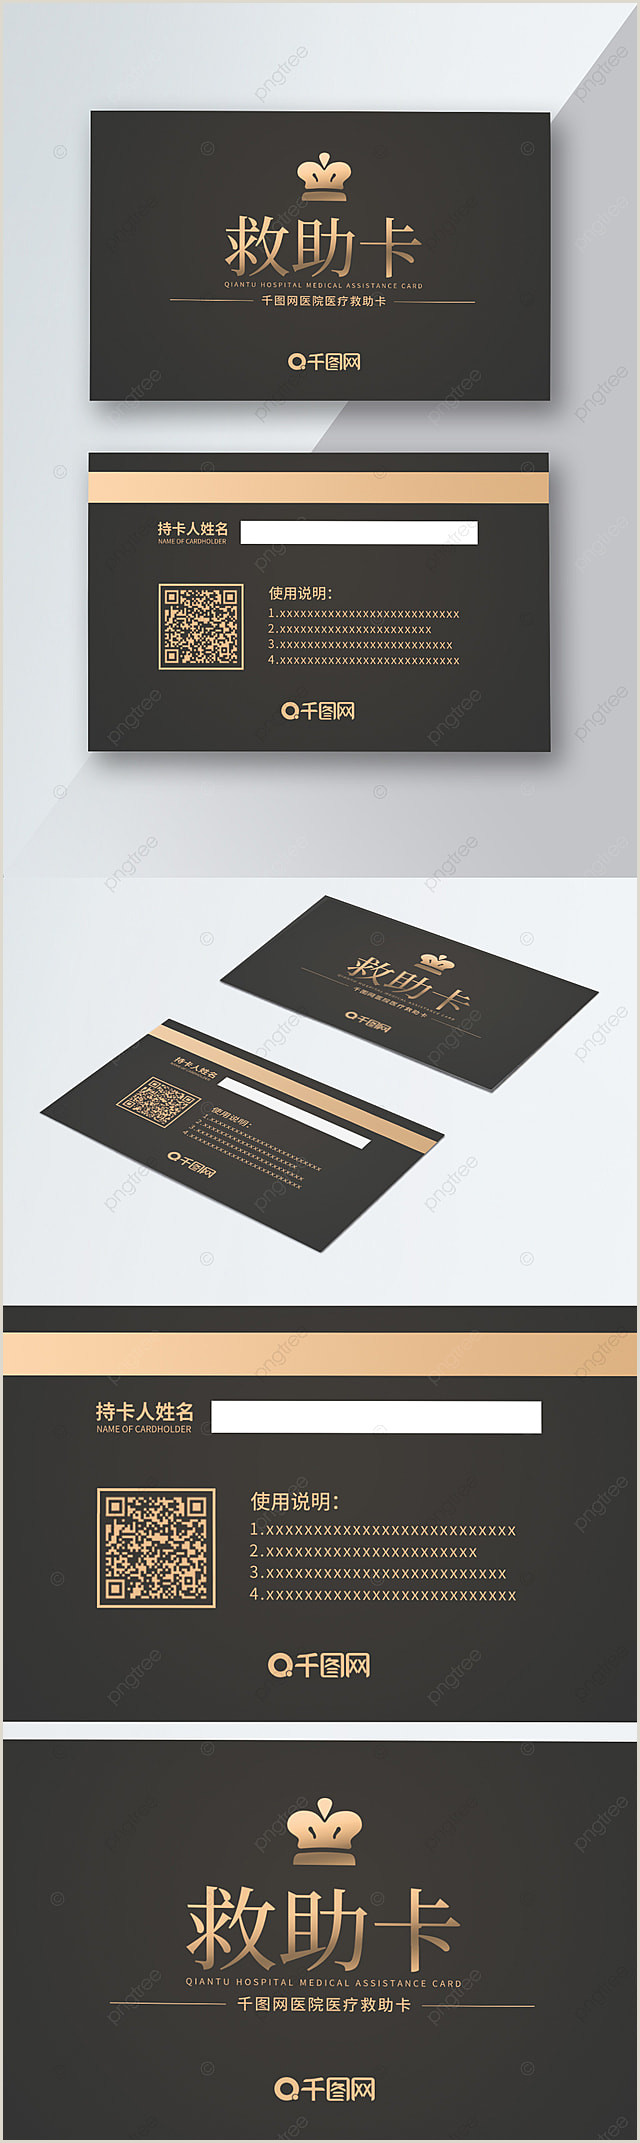 Buiness Card Template Discount Card Templates Psd 186 Design Templates For Free